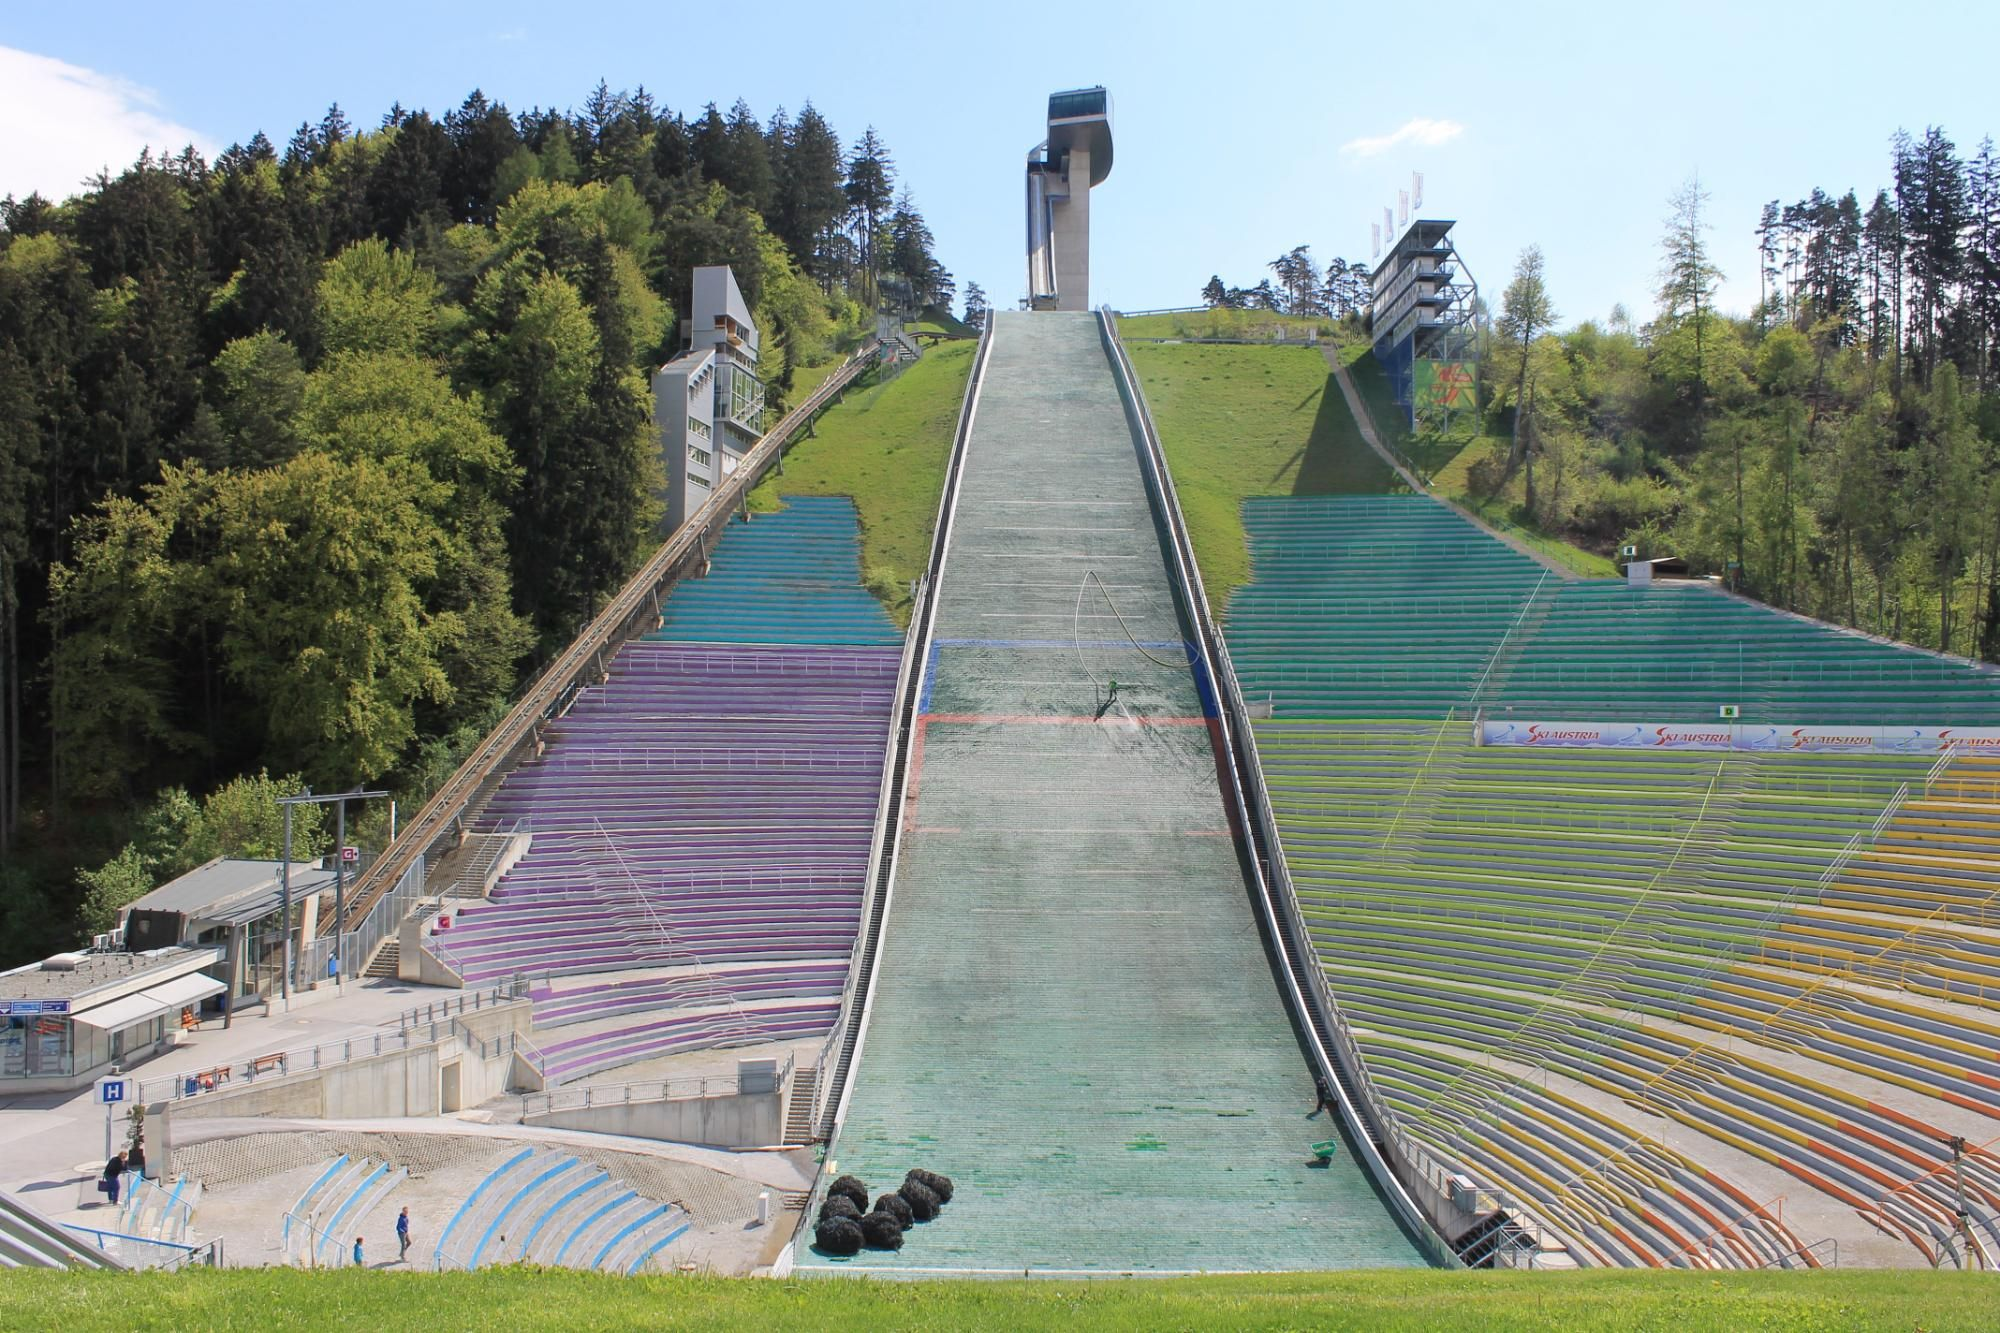 Bergisel Ski Jump Great View Of The City And Mountains